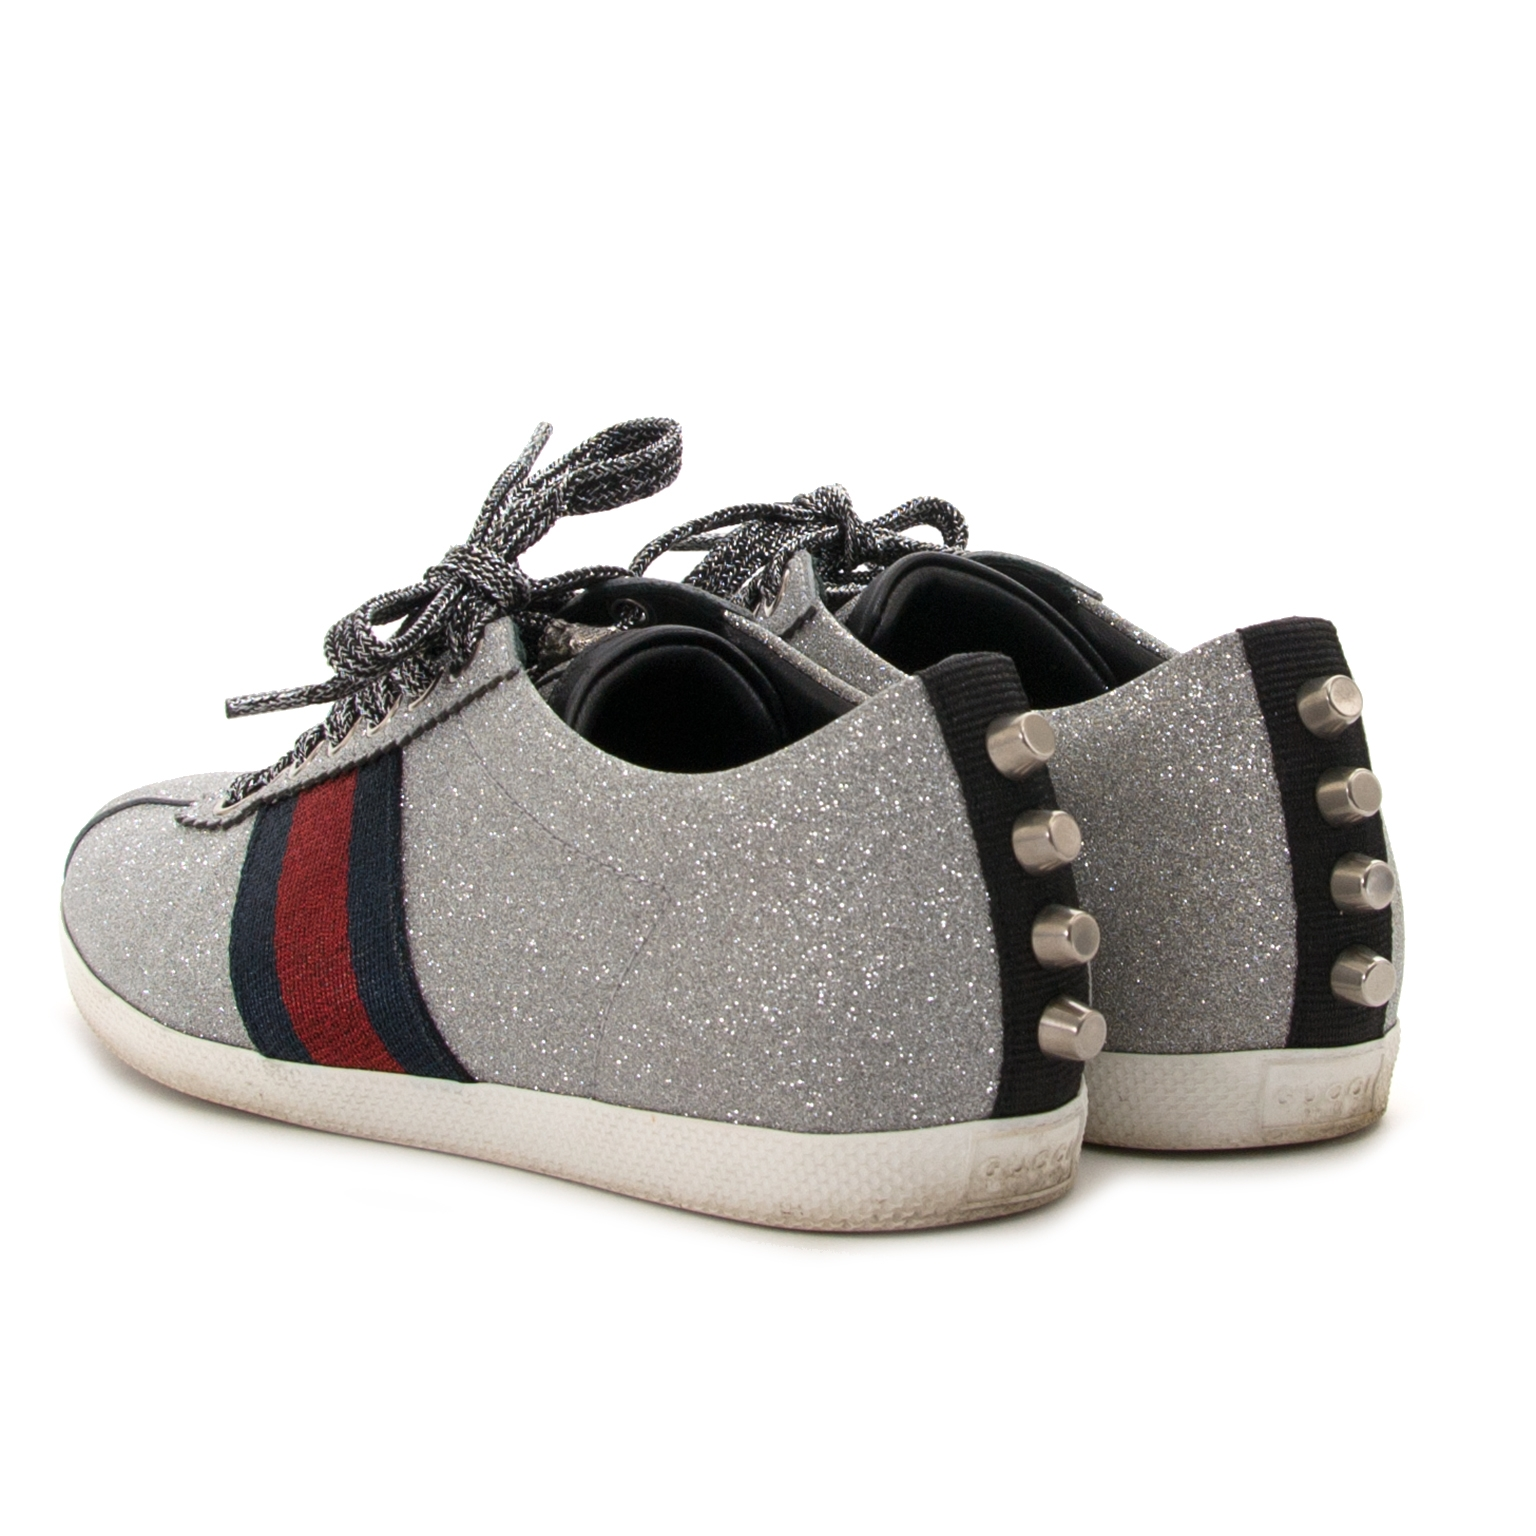 Gucci Glitter Web Sneaker With Studs - Size 36,5 now for sale at labellov antwerp for the best price